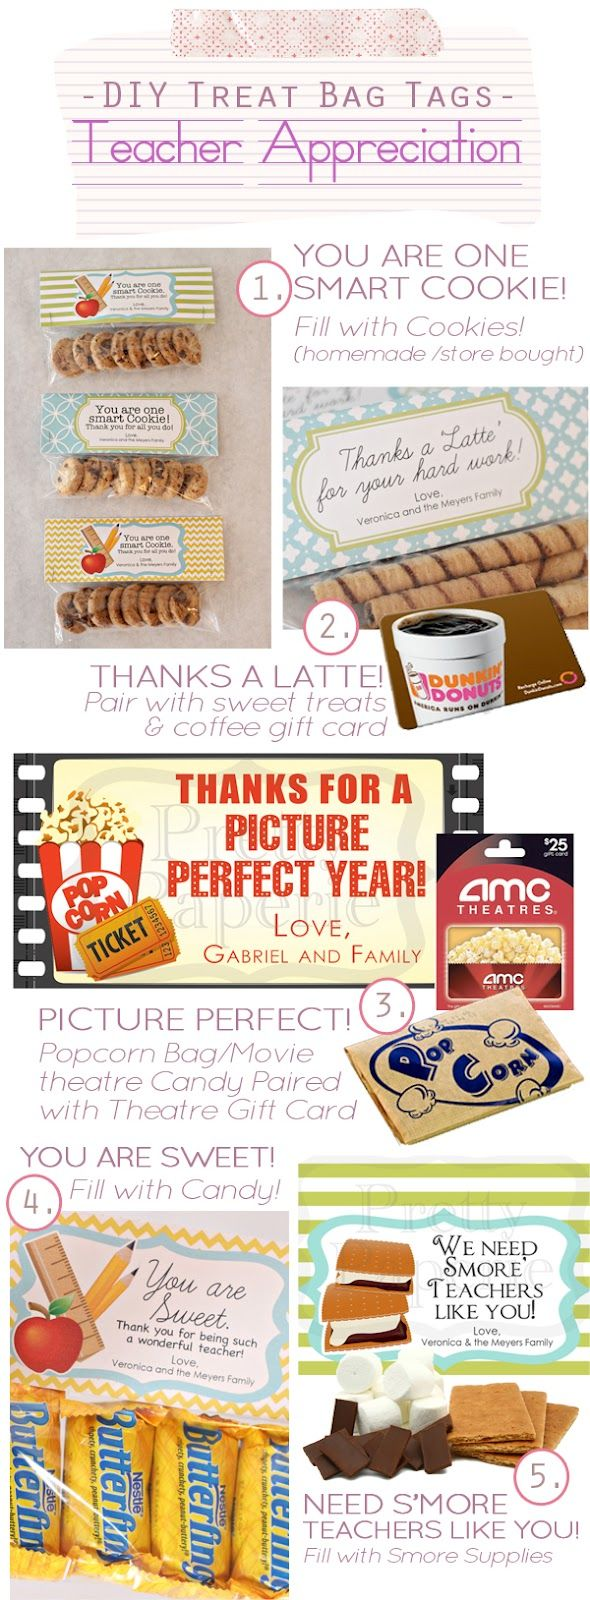 DIY Teacher Appreciation Treat Bags Inspiration Board - Printables & coordinating Ideas of what to put in the treat bags! $8